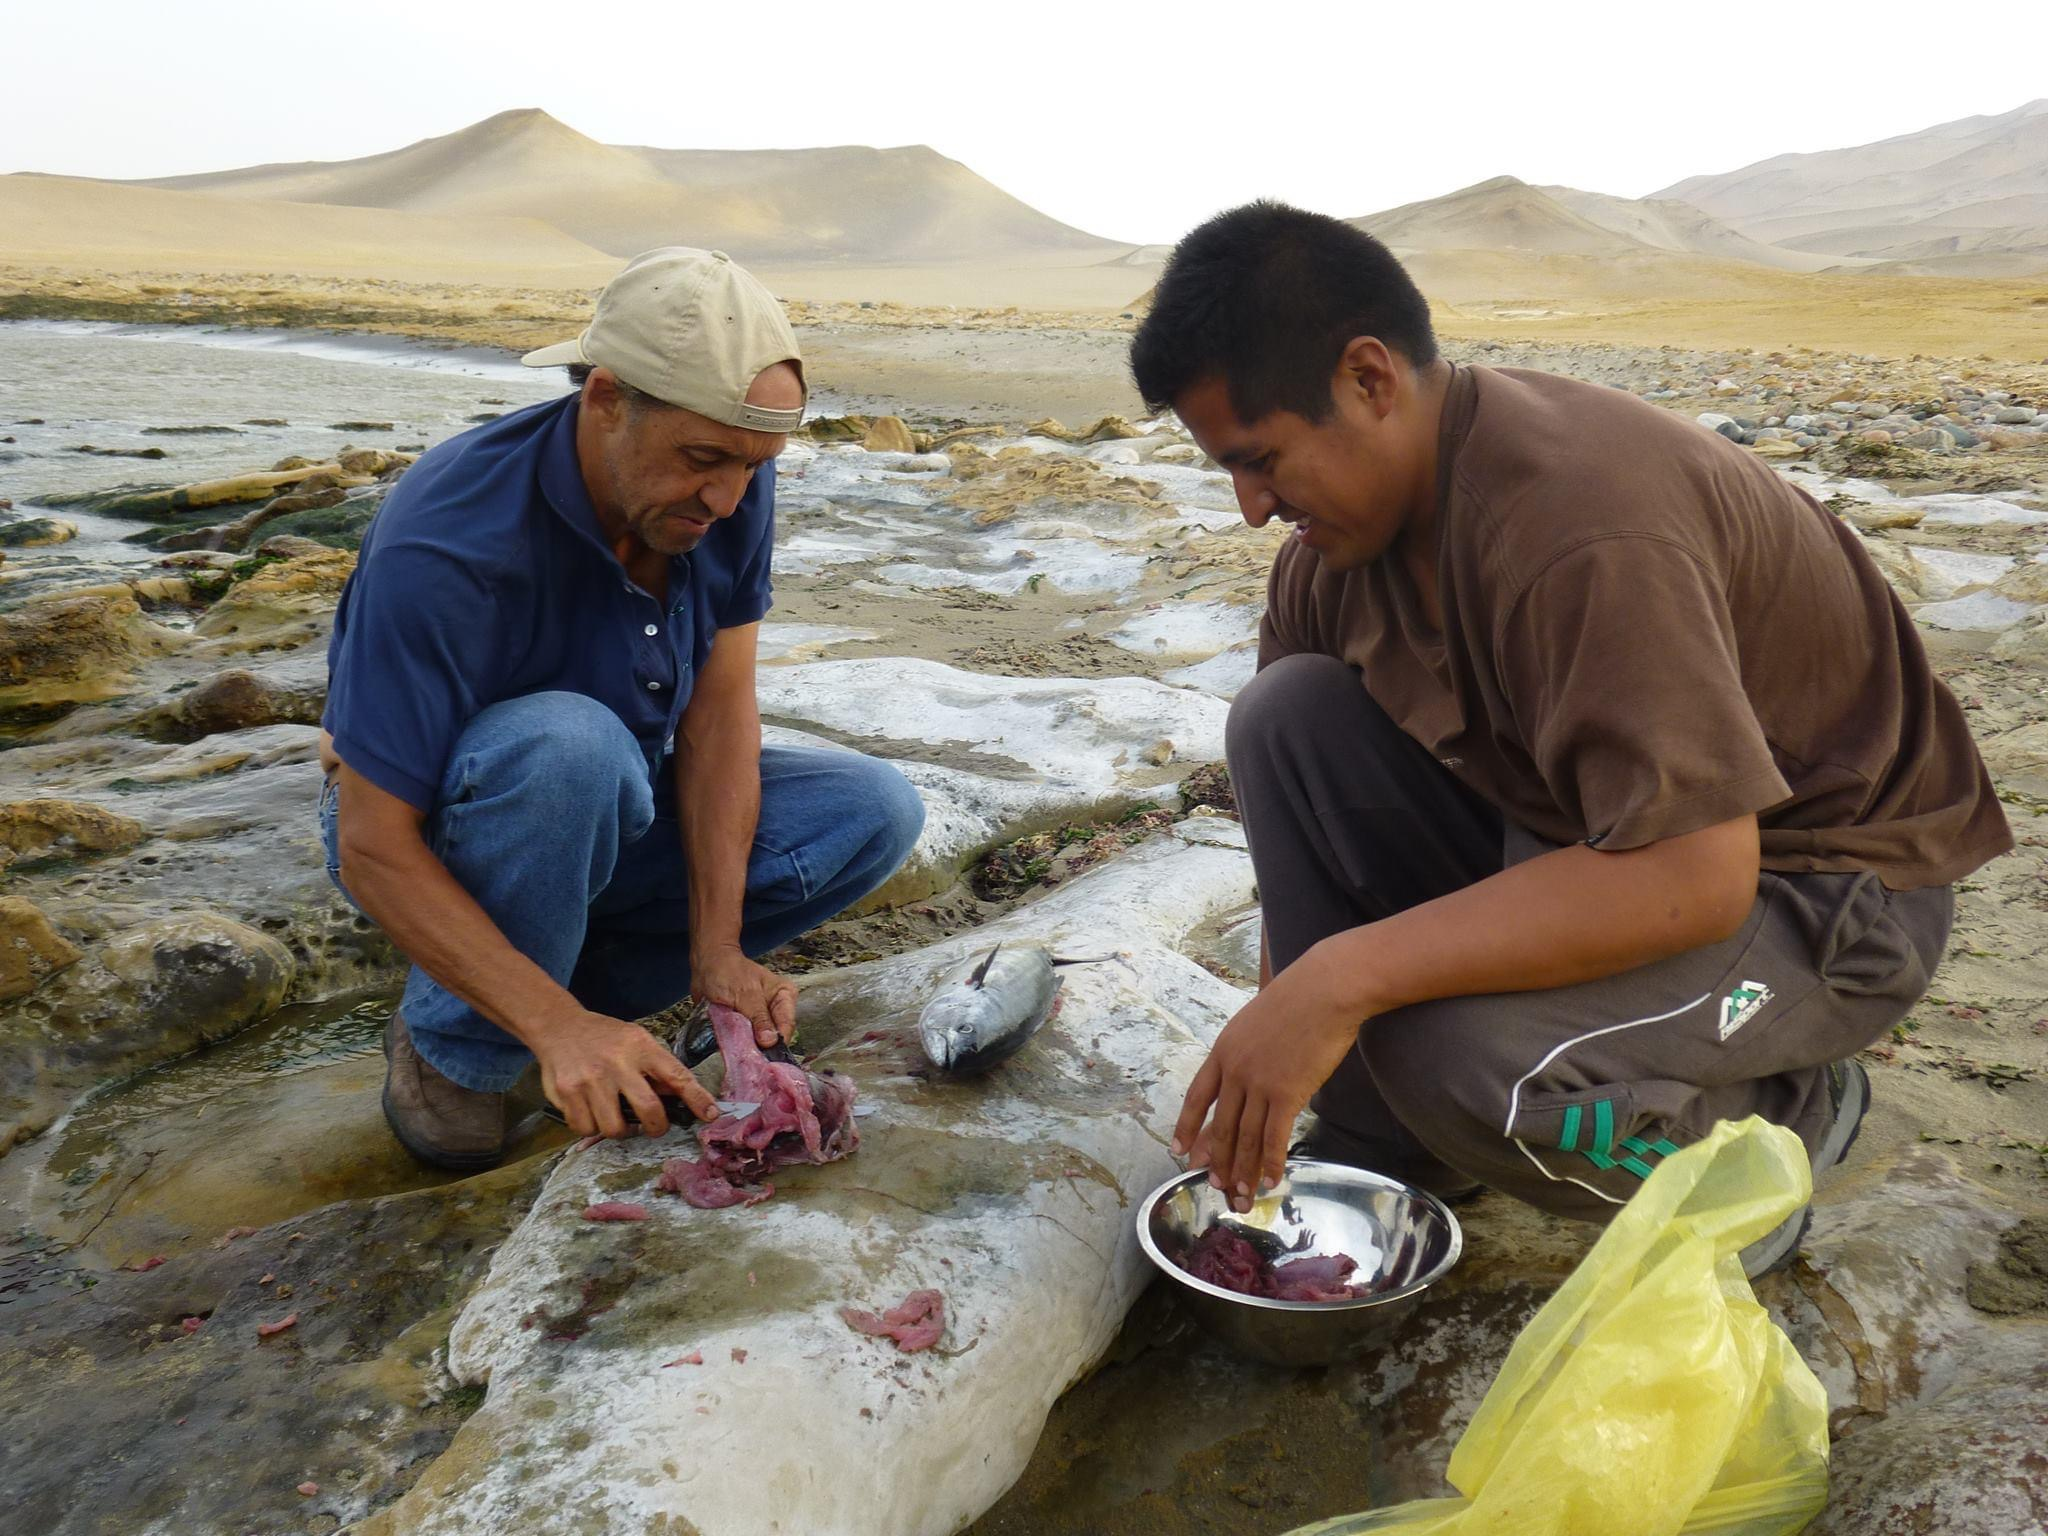 Oscar Beingolea with his friend Bel Tinco in the field in Paracas, on Peru's central coast where they often trapped North American migrant peregrines. Here they are preparing fish they caught for lunch. Photo from Beingolea's Facebook page via Nico Arcilla.